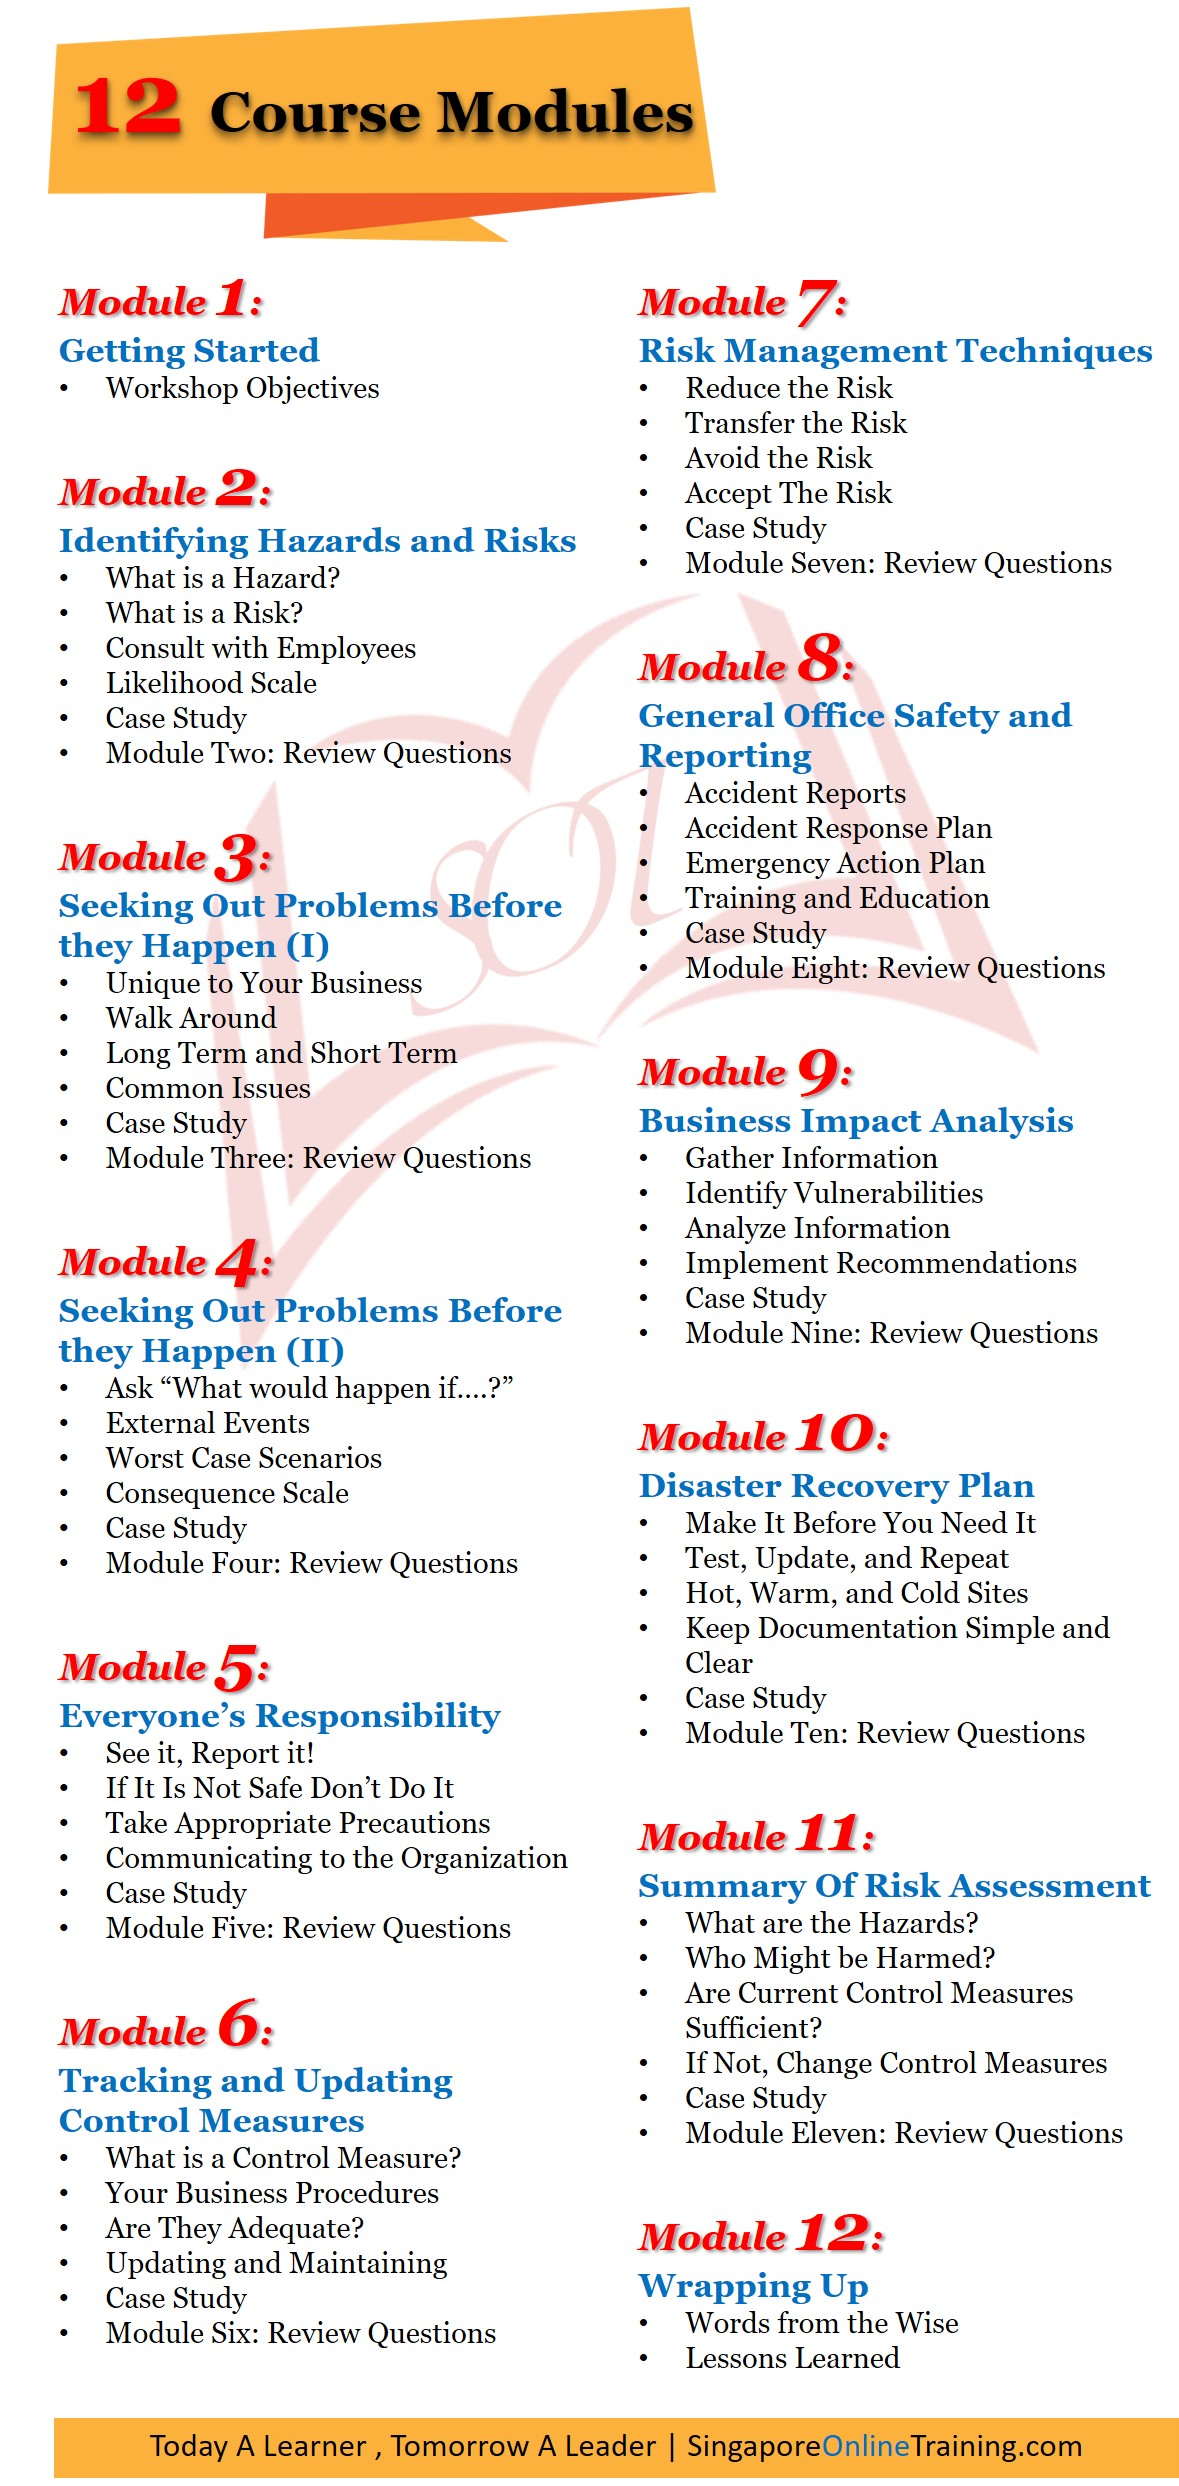 Risk Assessment and Management Course modules